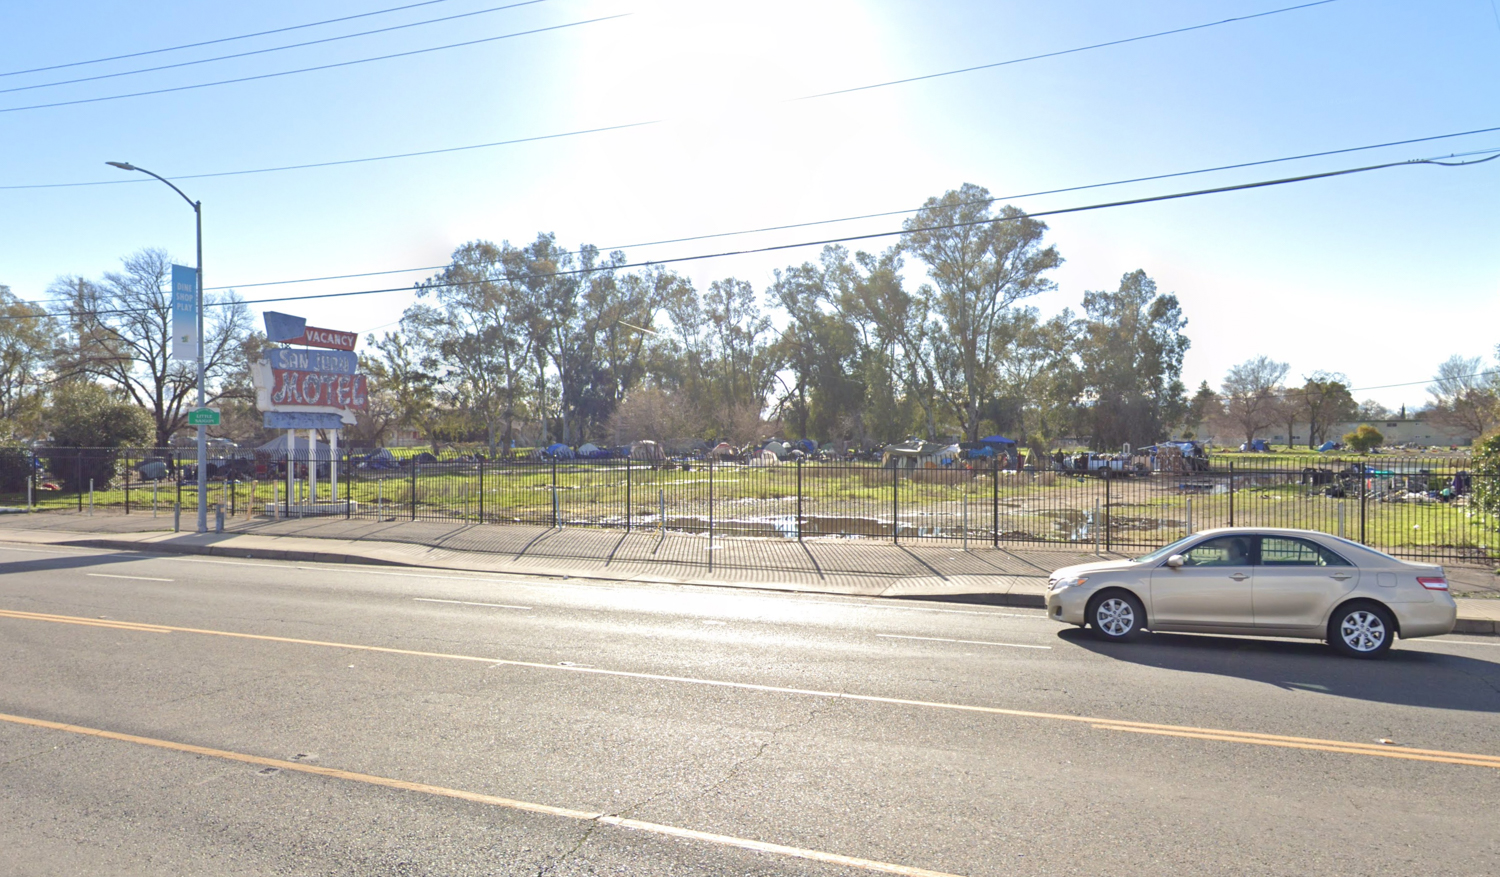 5700 Stockton Boulevard with former homeless camp on site, image via Google Street View